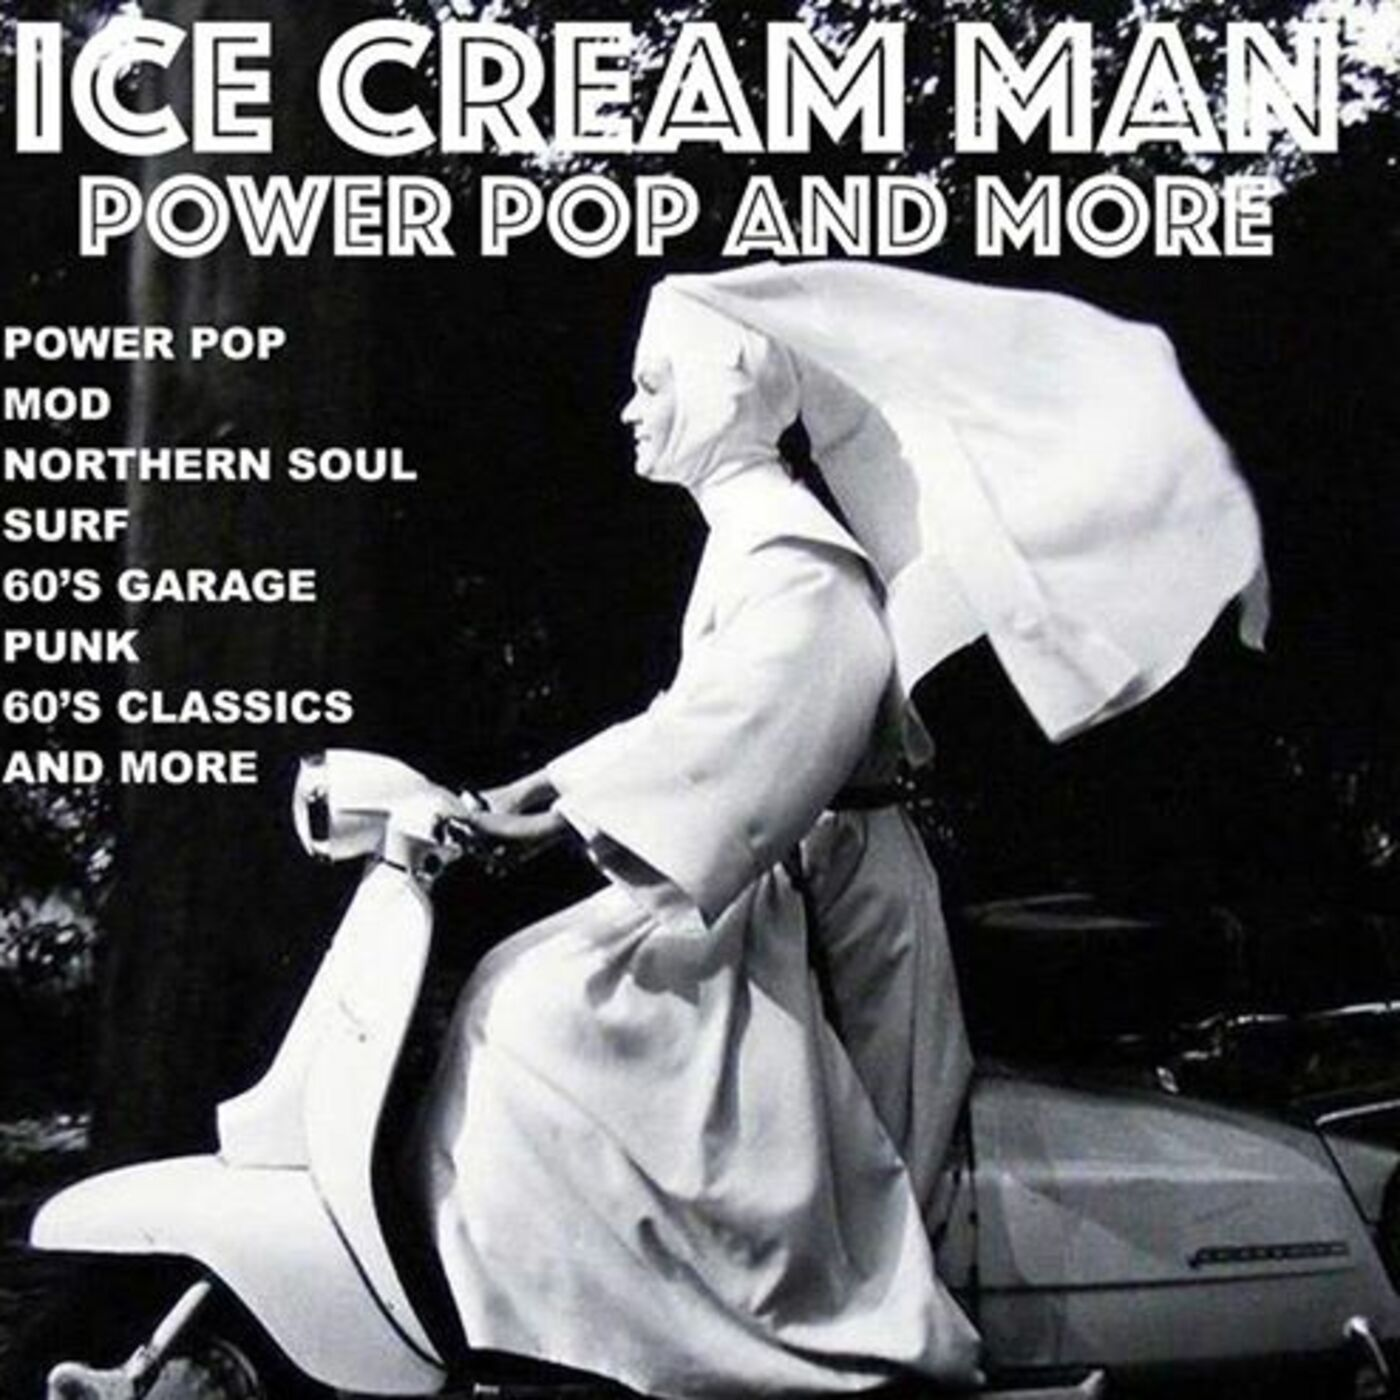 Ice Cream Man Power Pop and More #242